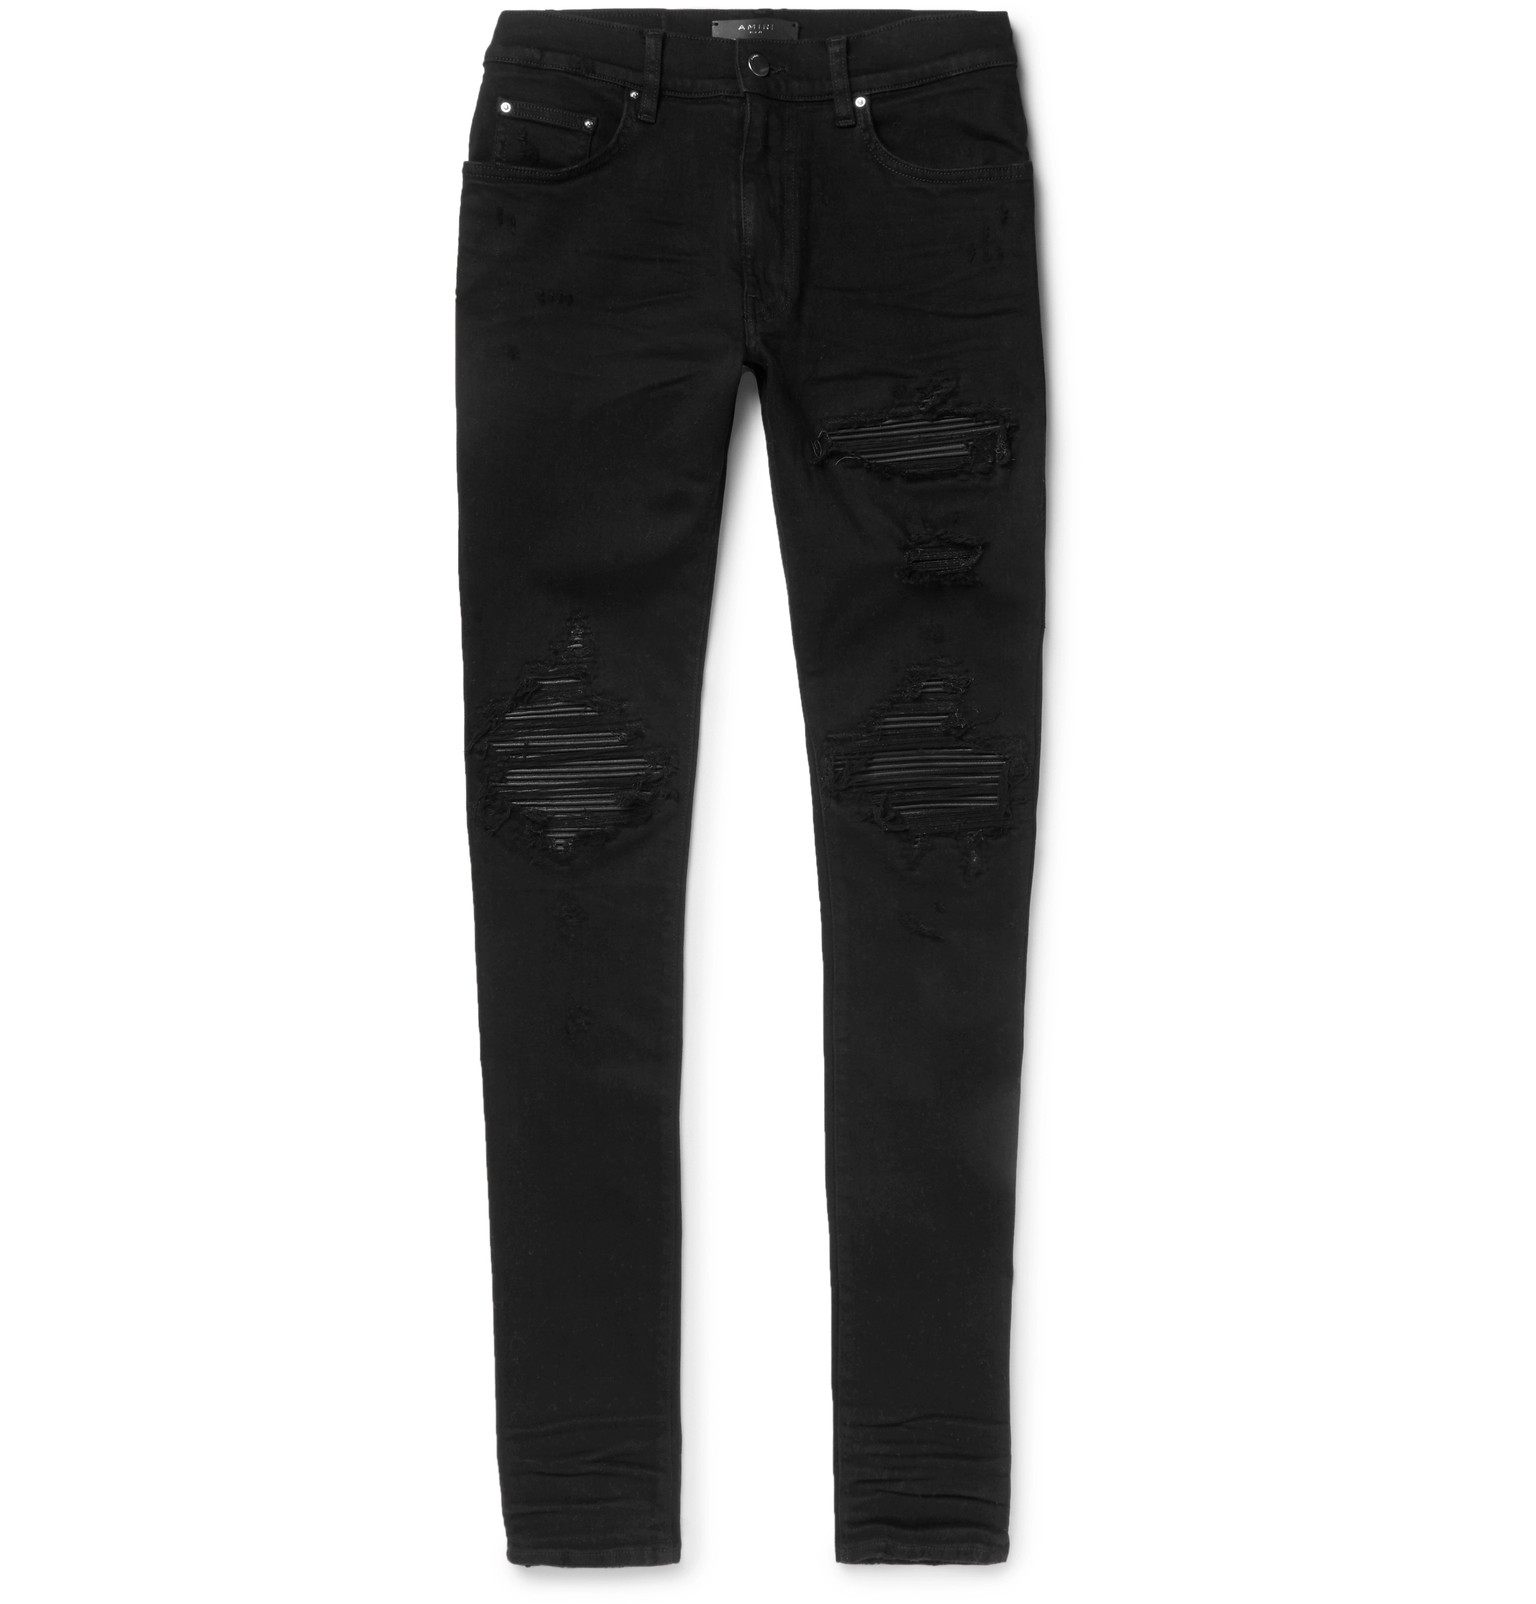 For Cheap Discount Cheap Excellent Skinny-fit Appliquéd Panelled Distressed Stretch-denim Jeans Amiri Clearance From China hdsNm04